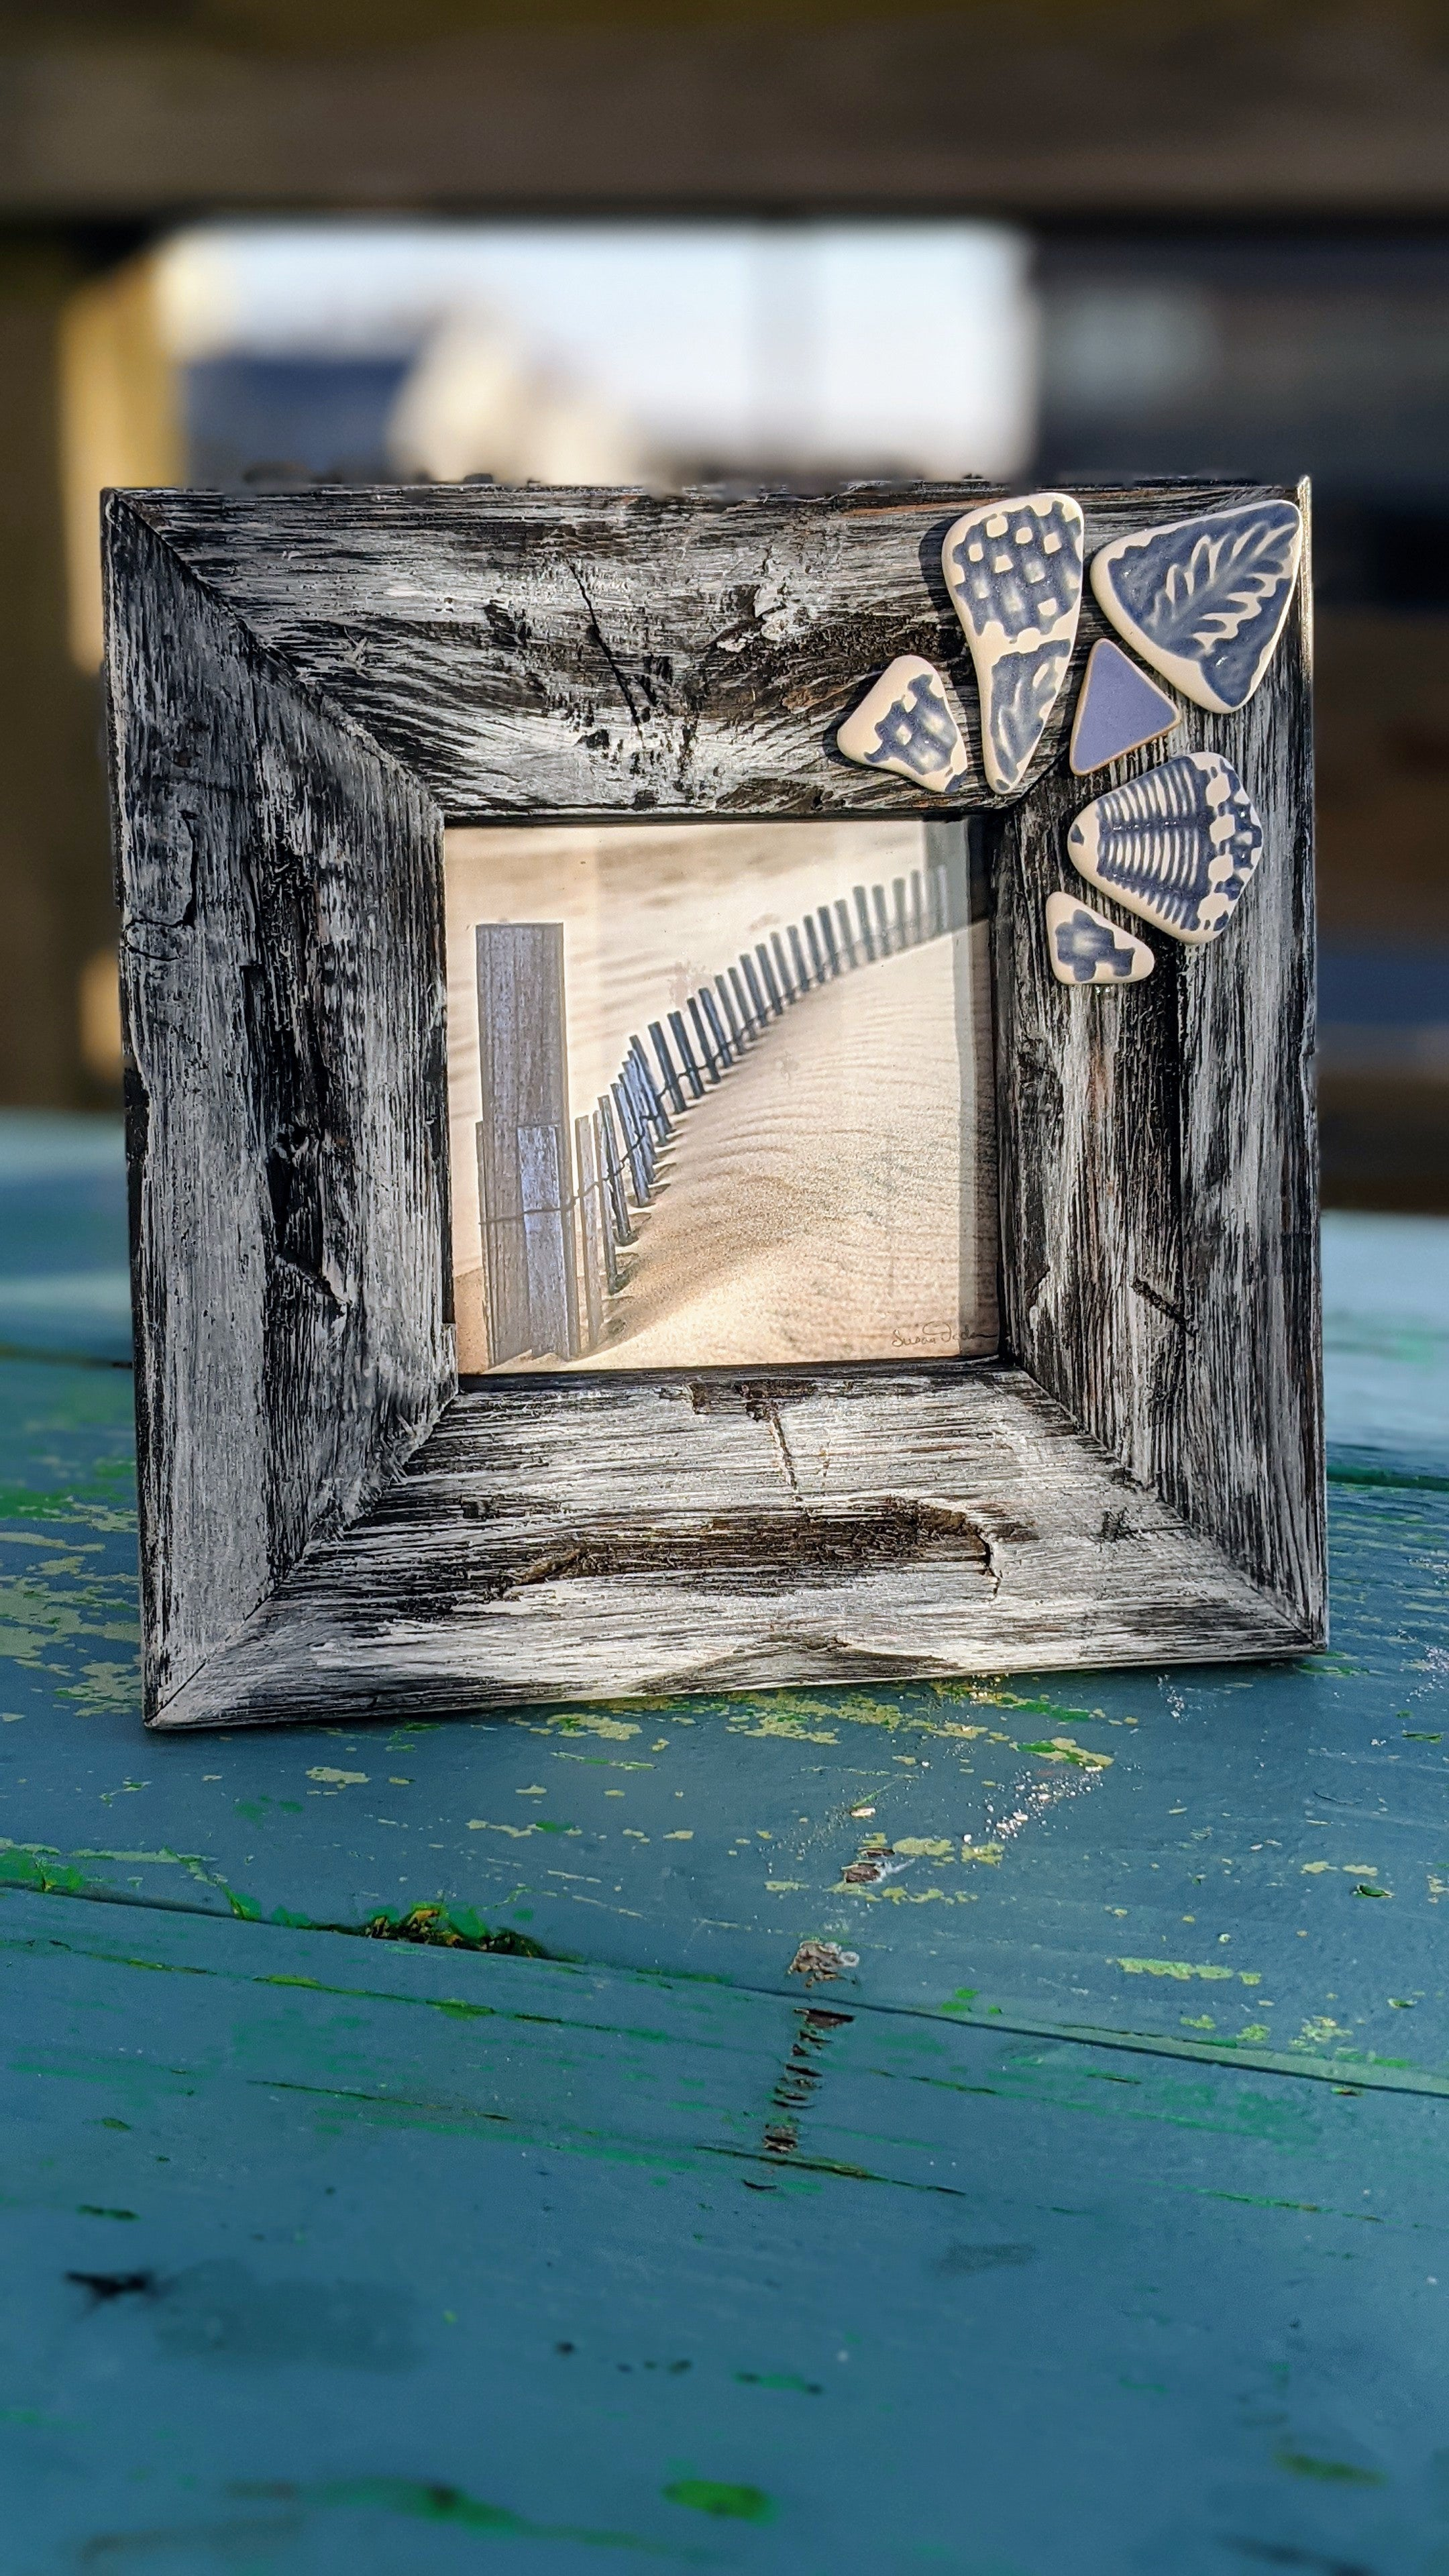 Sandfence photo distressed frame antique tumbled pottery